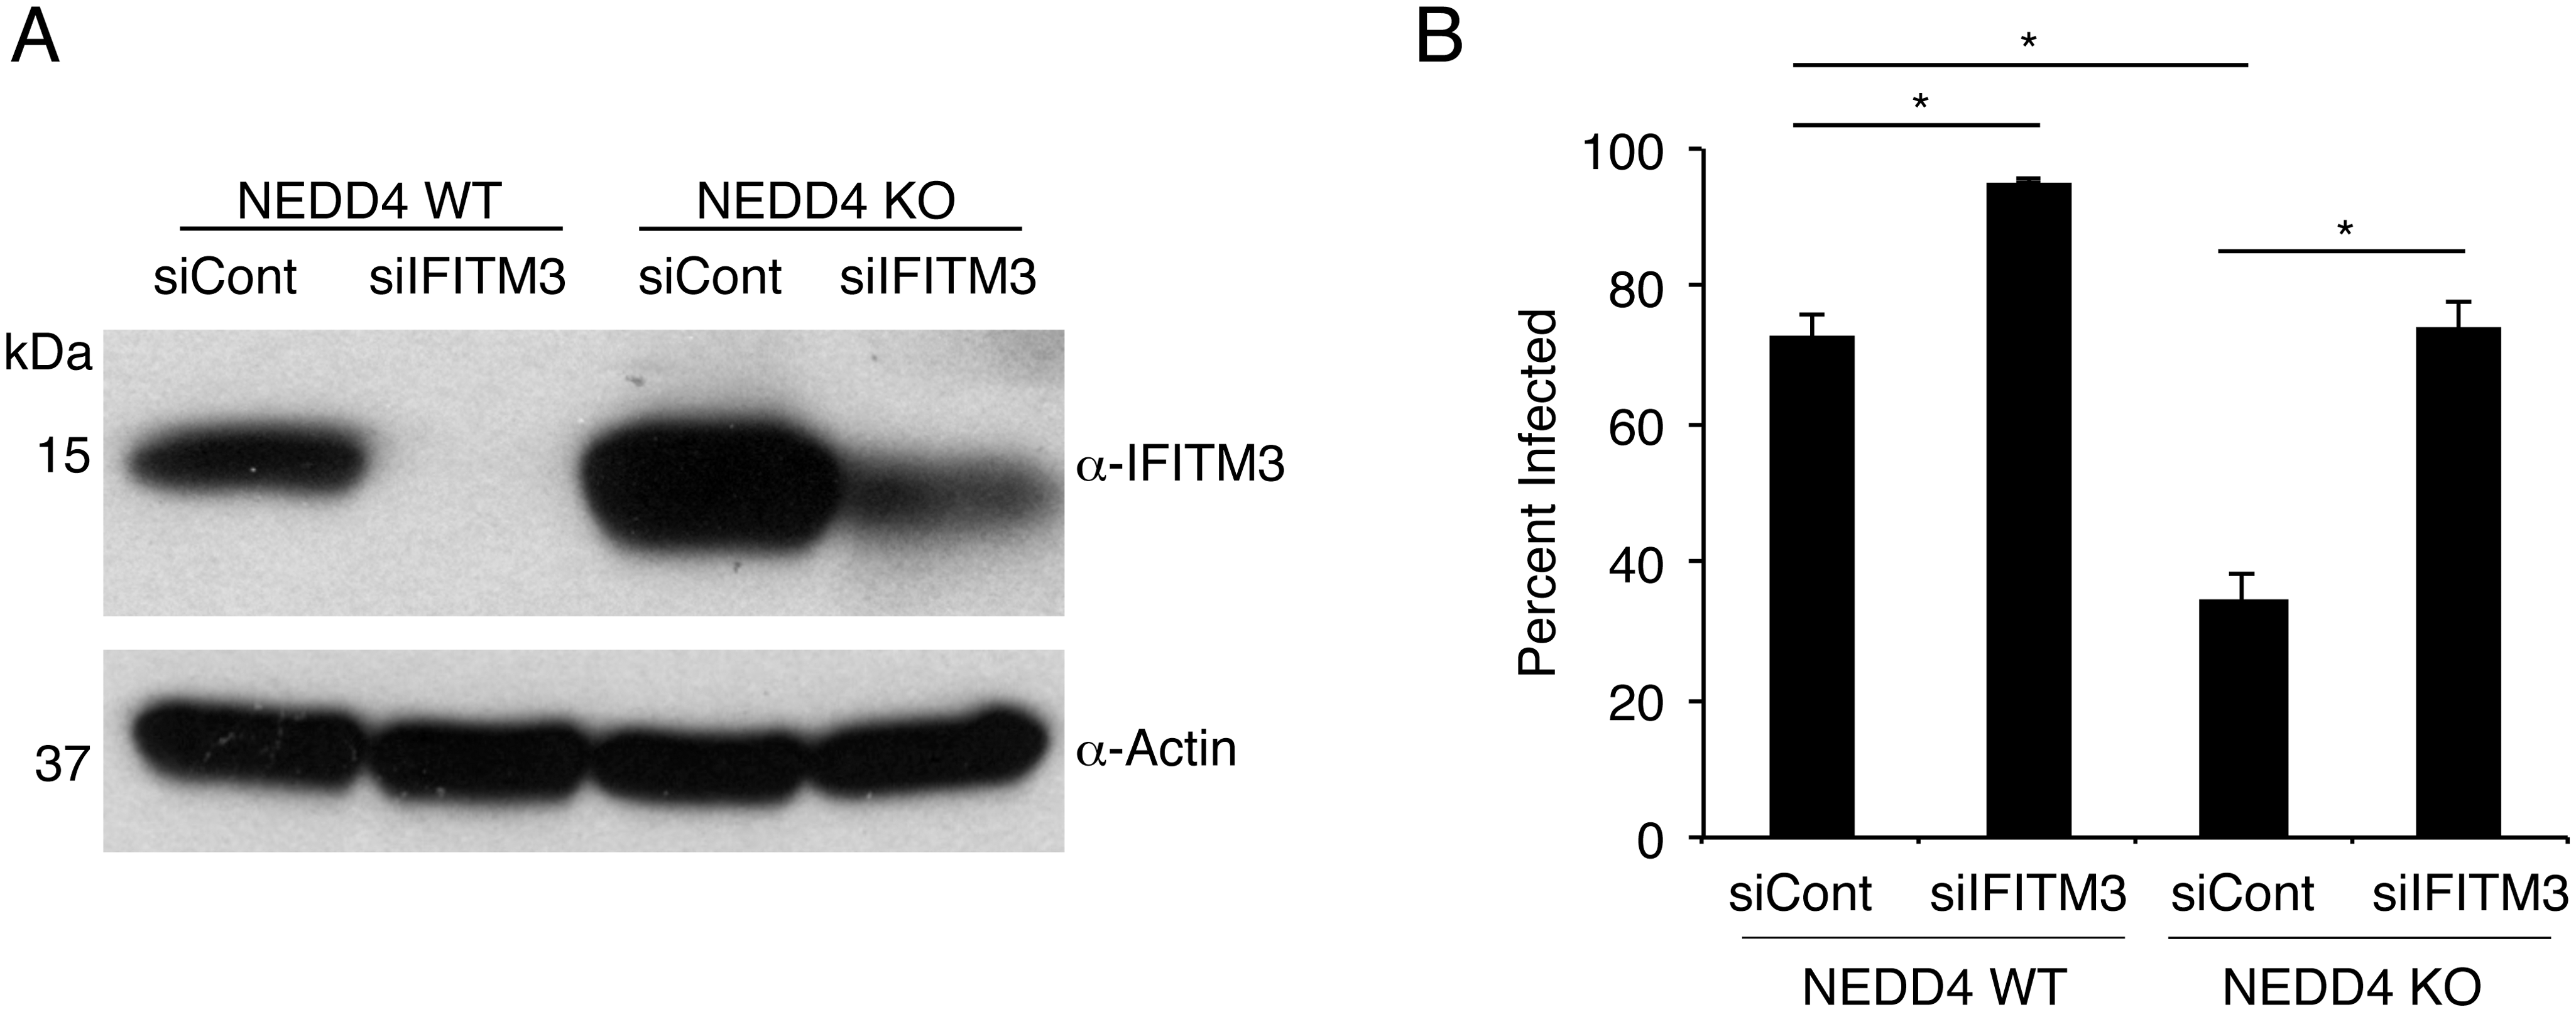 NEDD4 regulates cellular susceptibility to influenza virus infection by controlling IFITM3 levels.